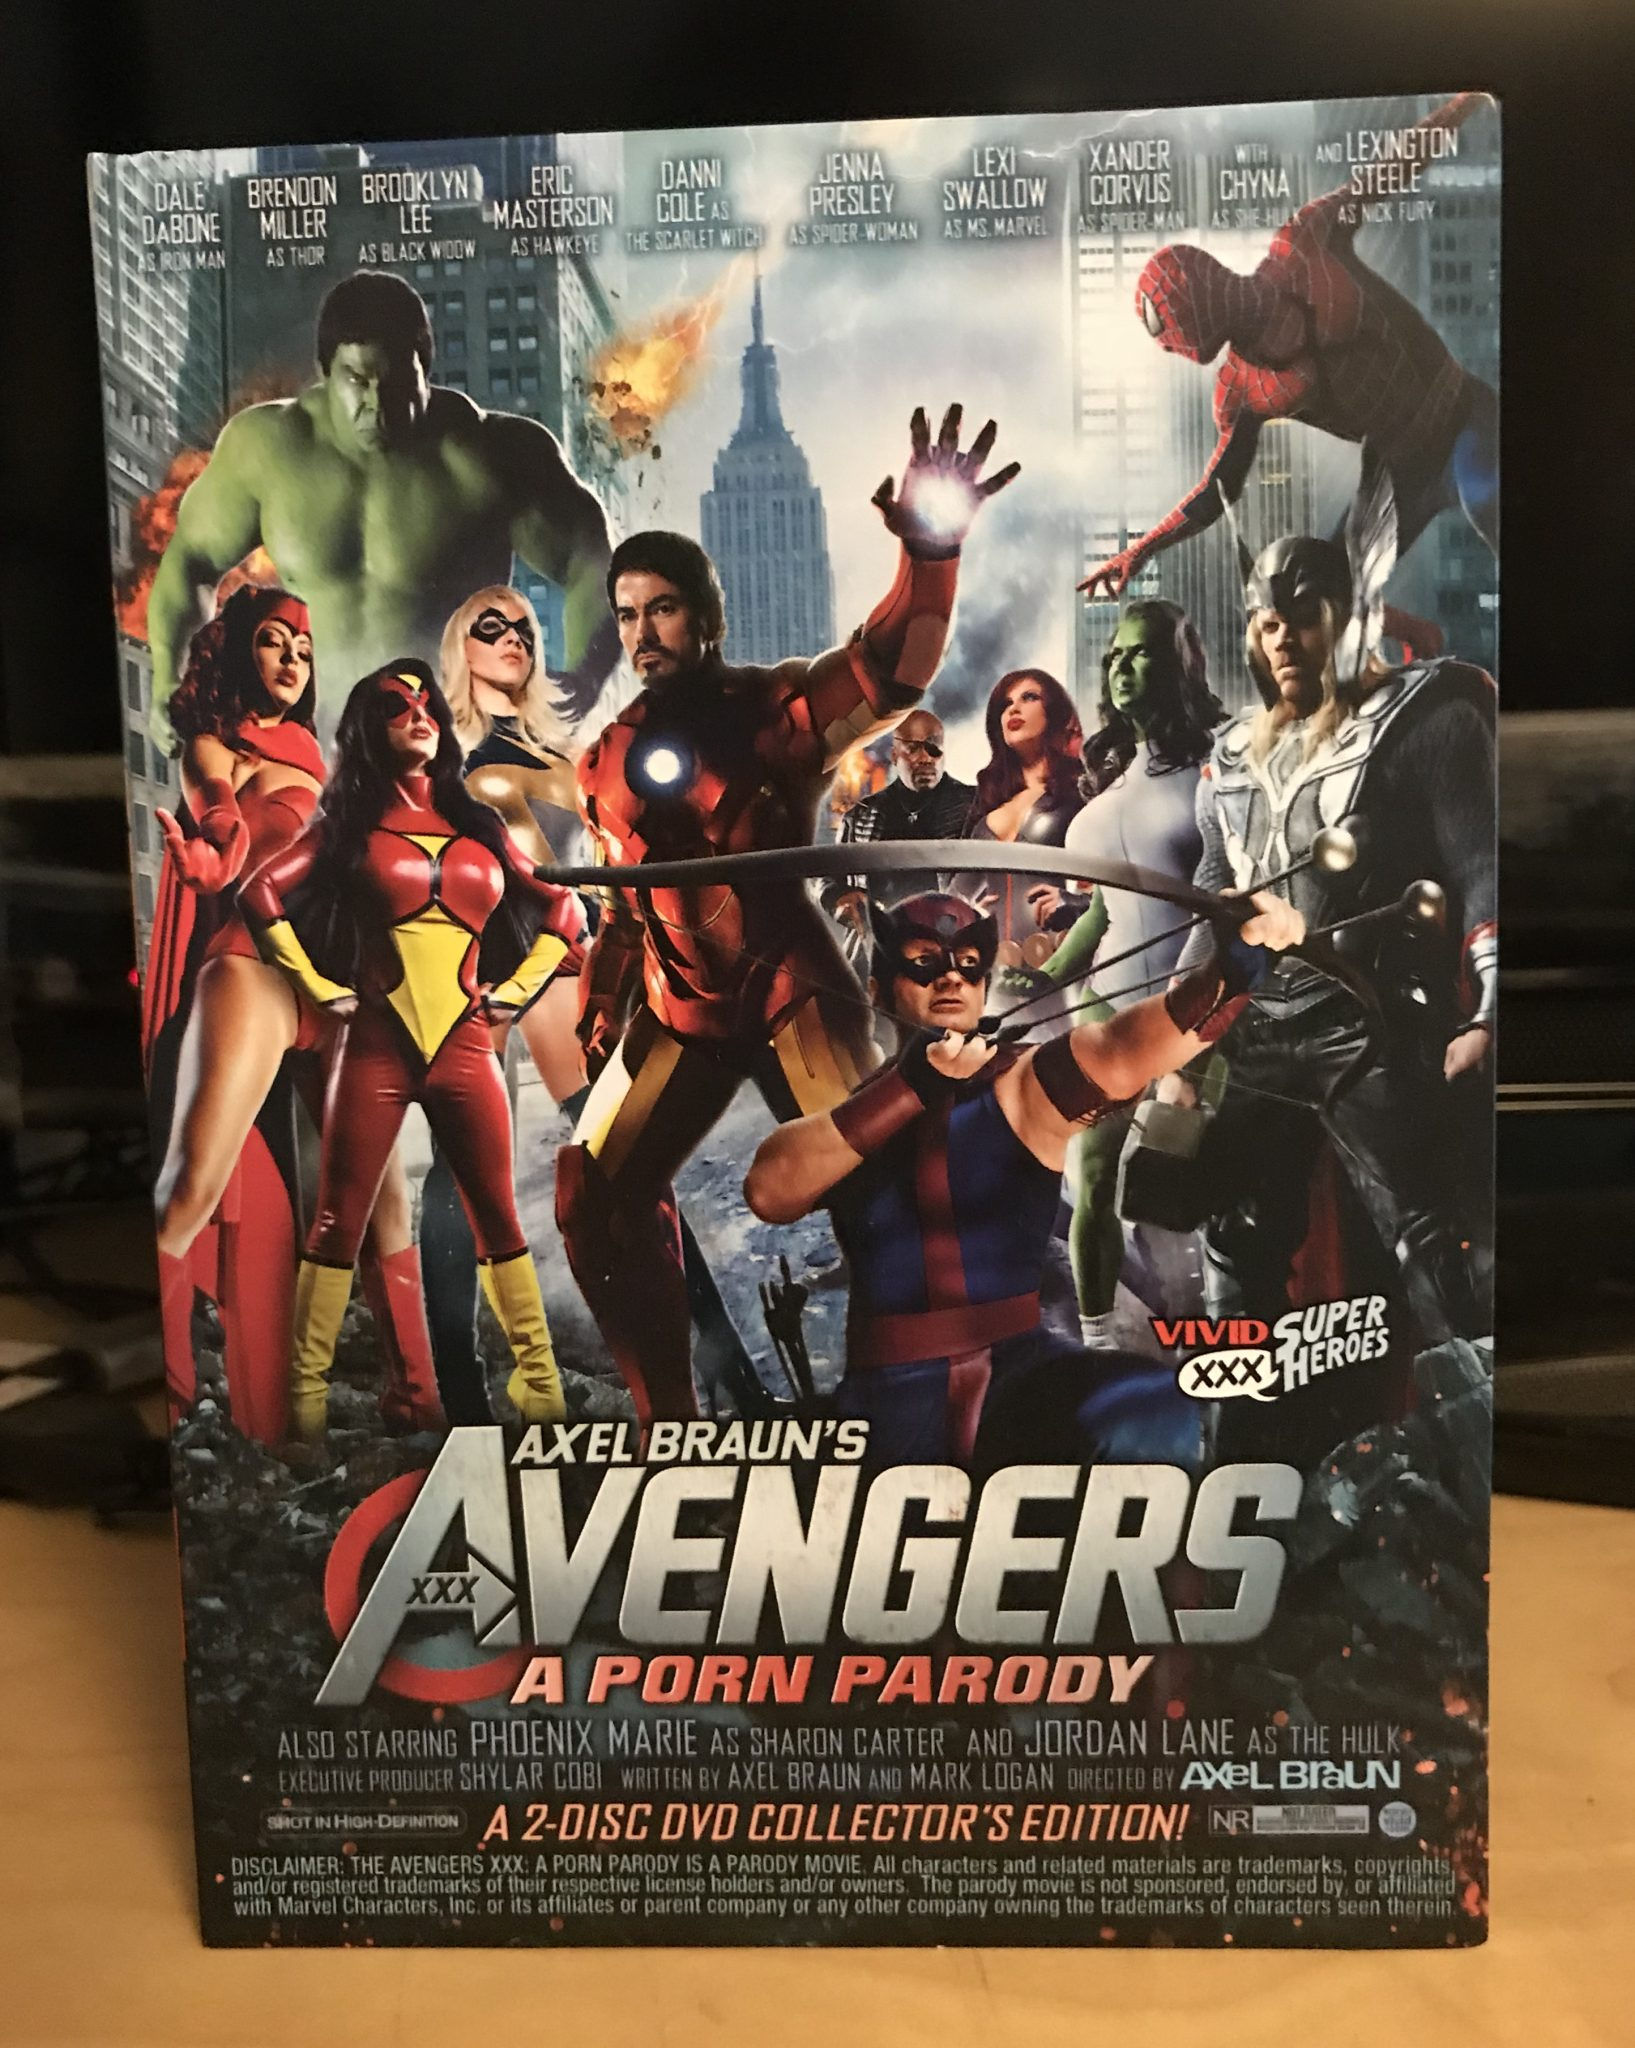 Adult Continuity Issue 13 Avengers Xxx A Porn Parody Fanboynation Magazine